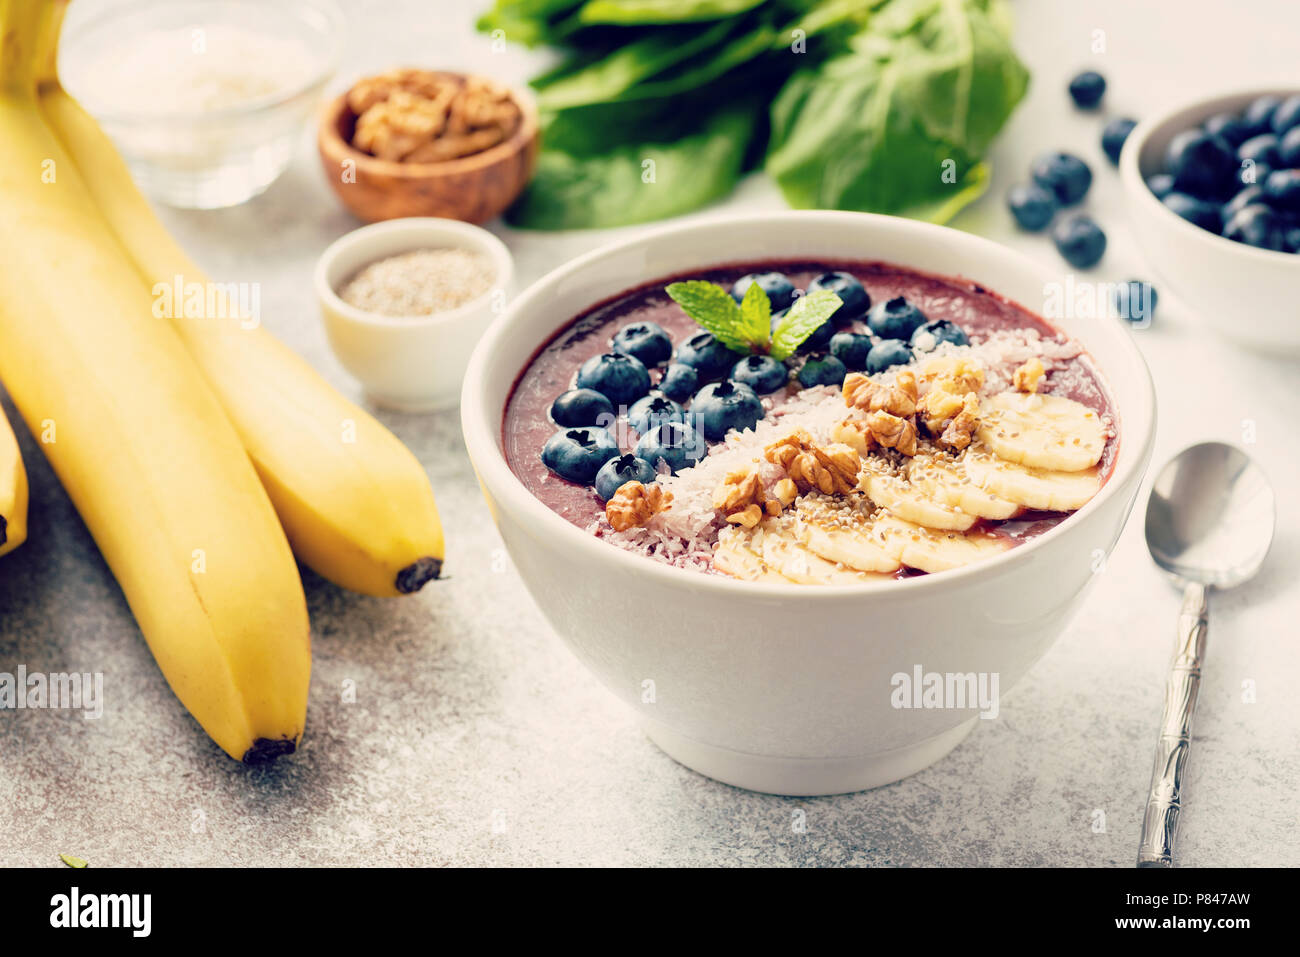 Acai smoothie bowl on grey concrete background. Smoothie with superfood toppings banana, walnut, coconut, chia seeds and fresh blueberries. Selective  - Stock Image